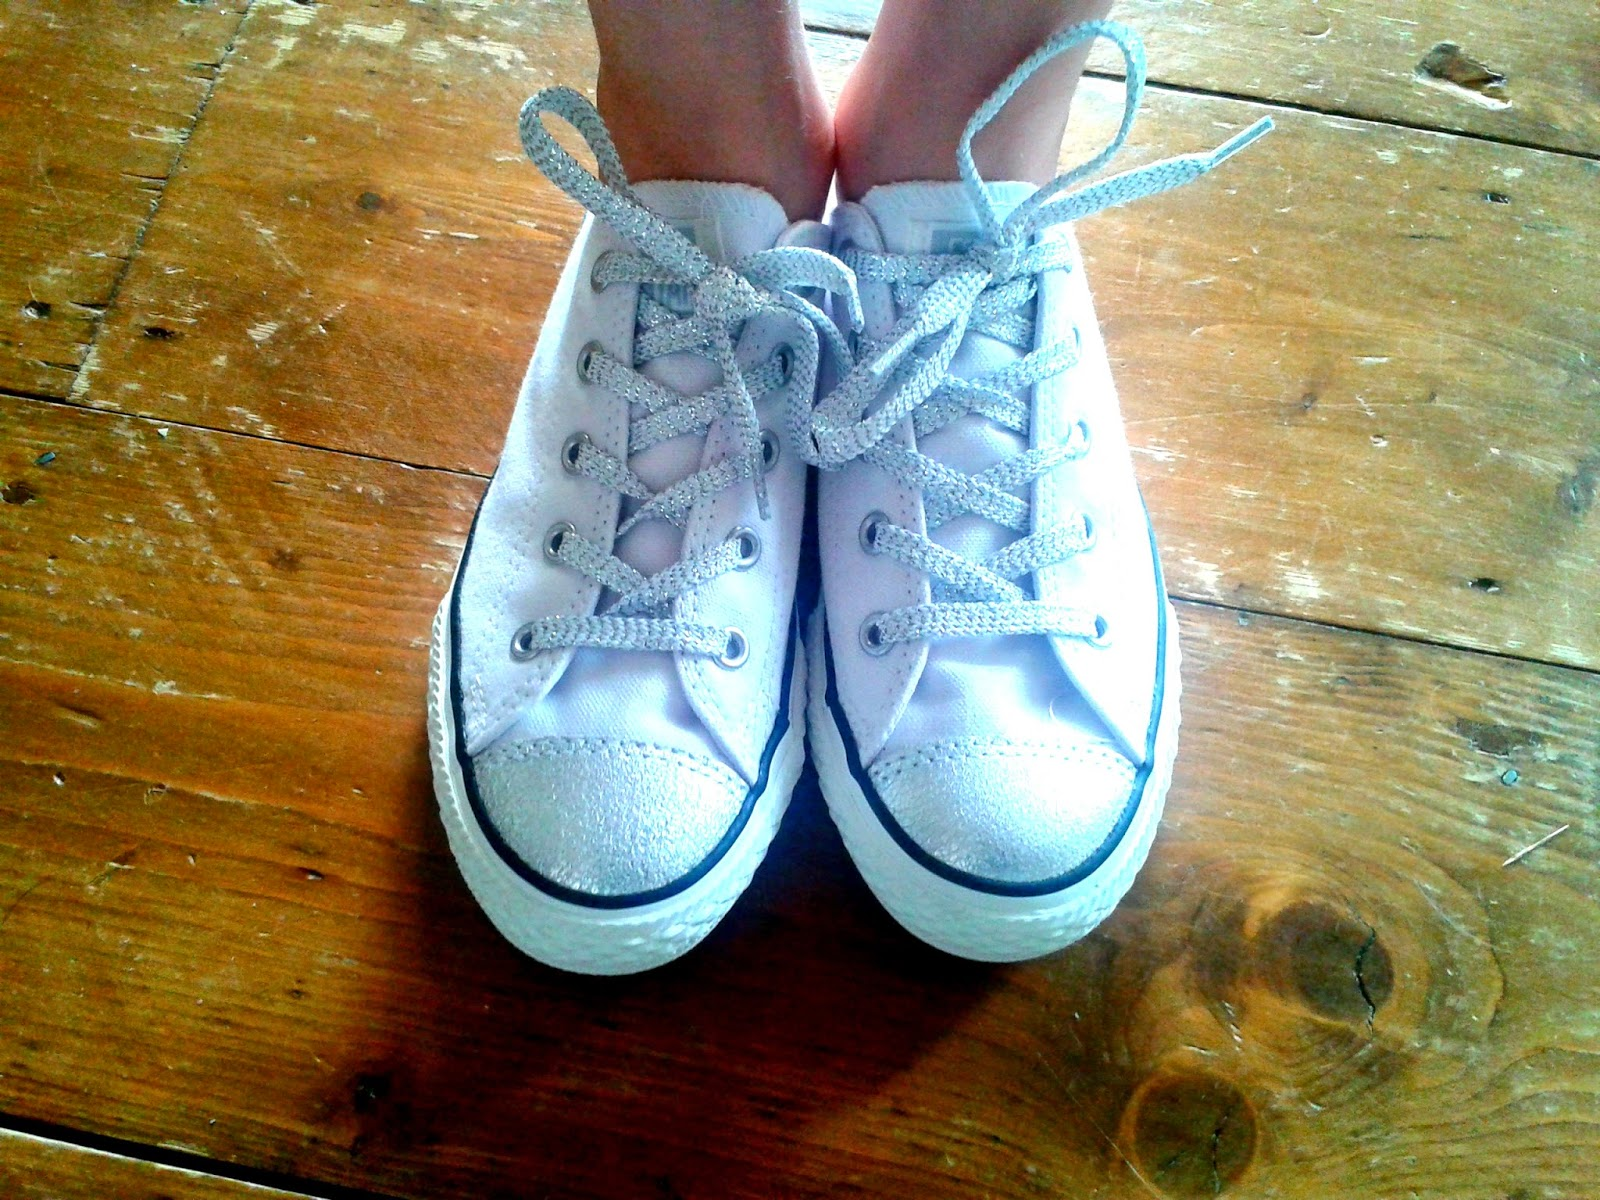 Project 365 day 201 - Converse for the bridesmaid // 76sunflowers